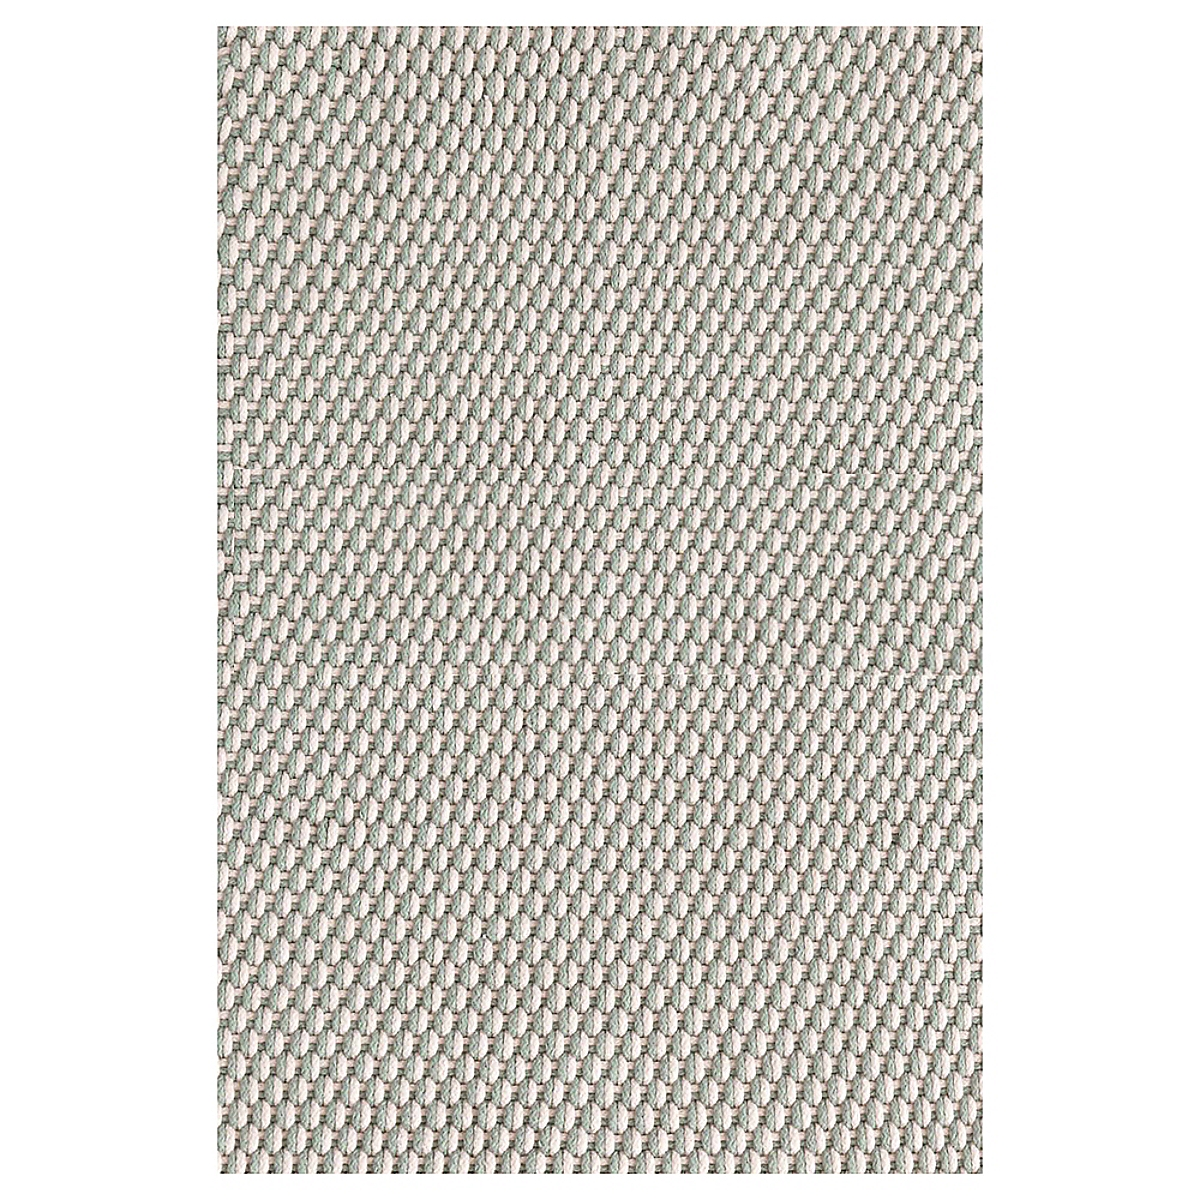 Two-Tone Rope Light Blue/Ivory Indoor/Outdoor Rug